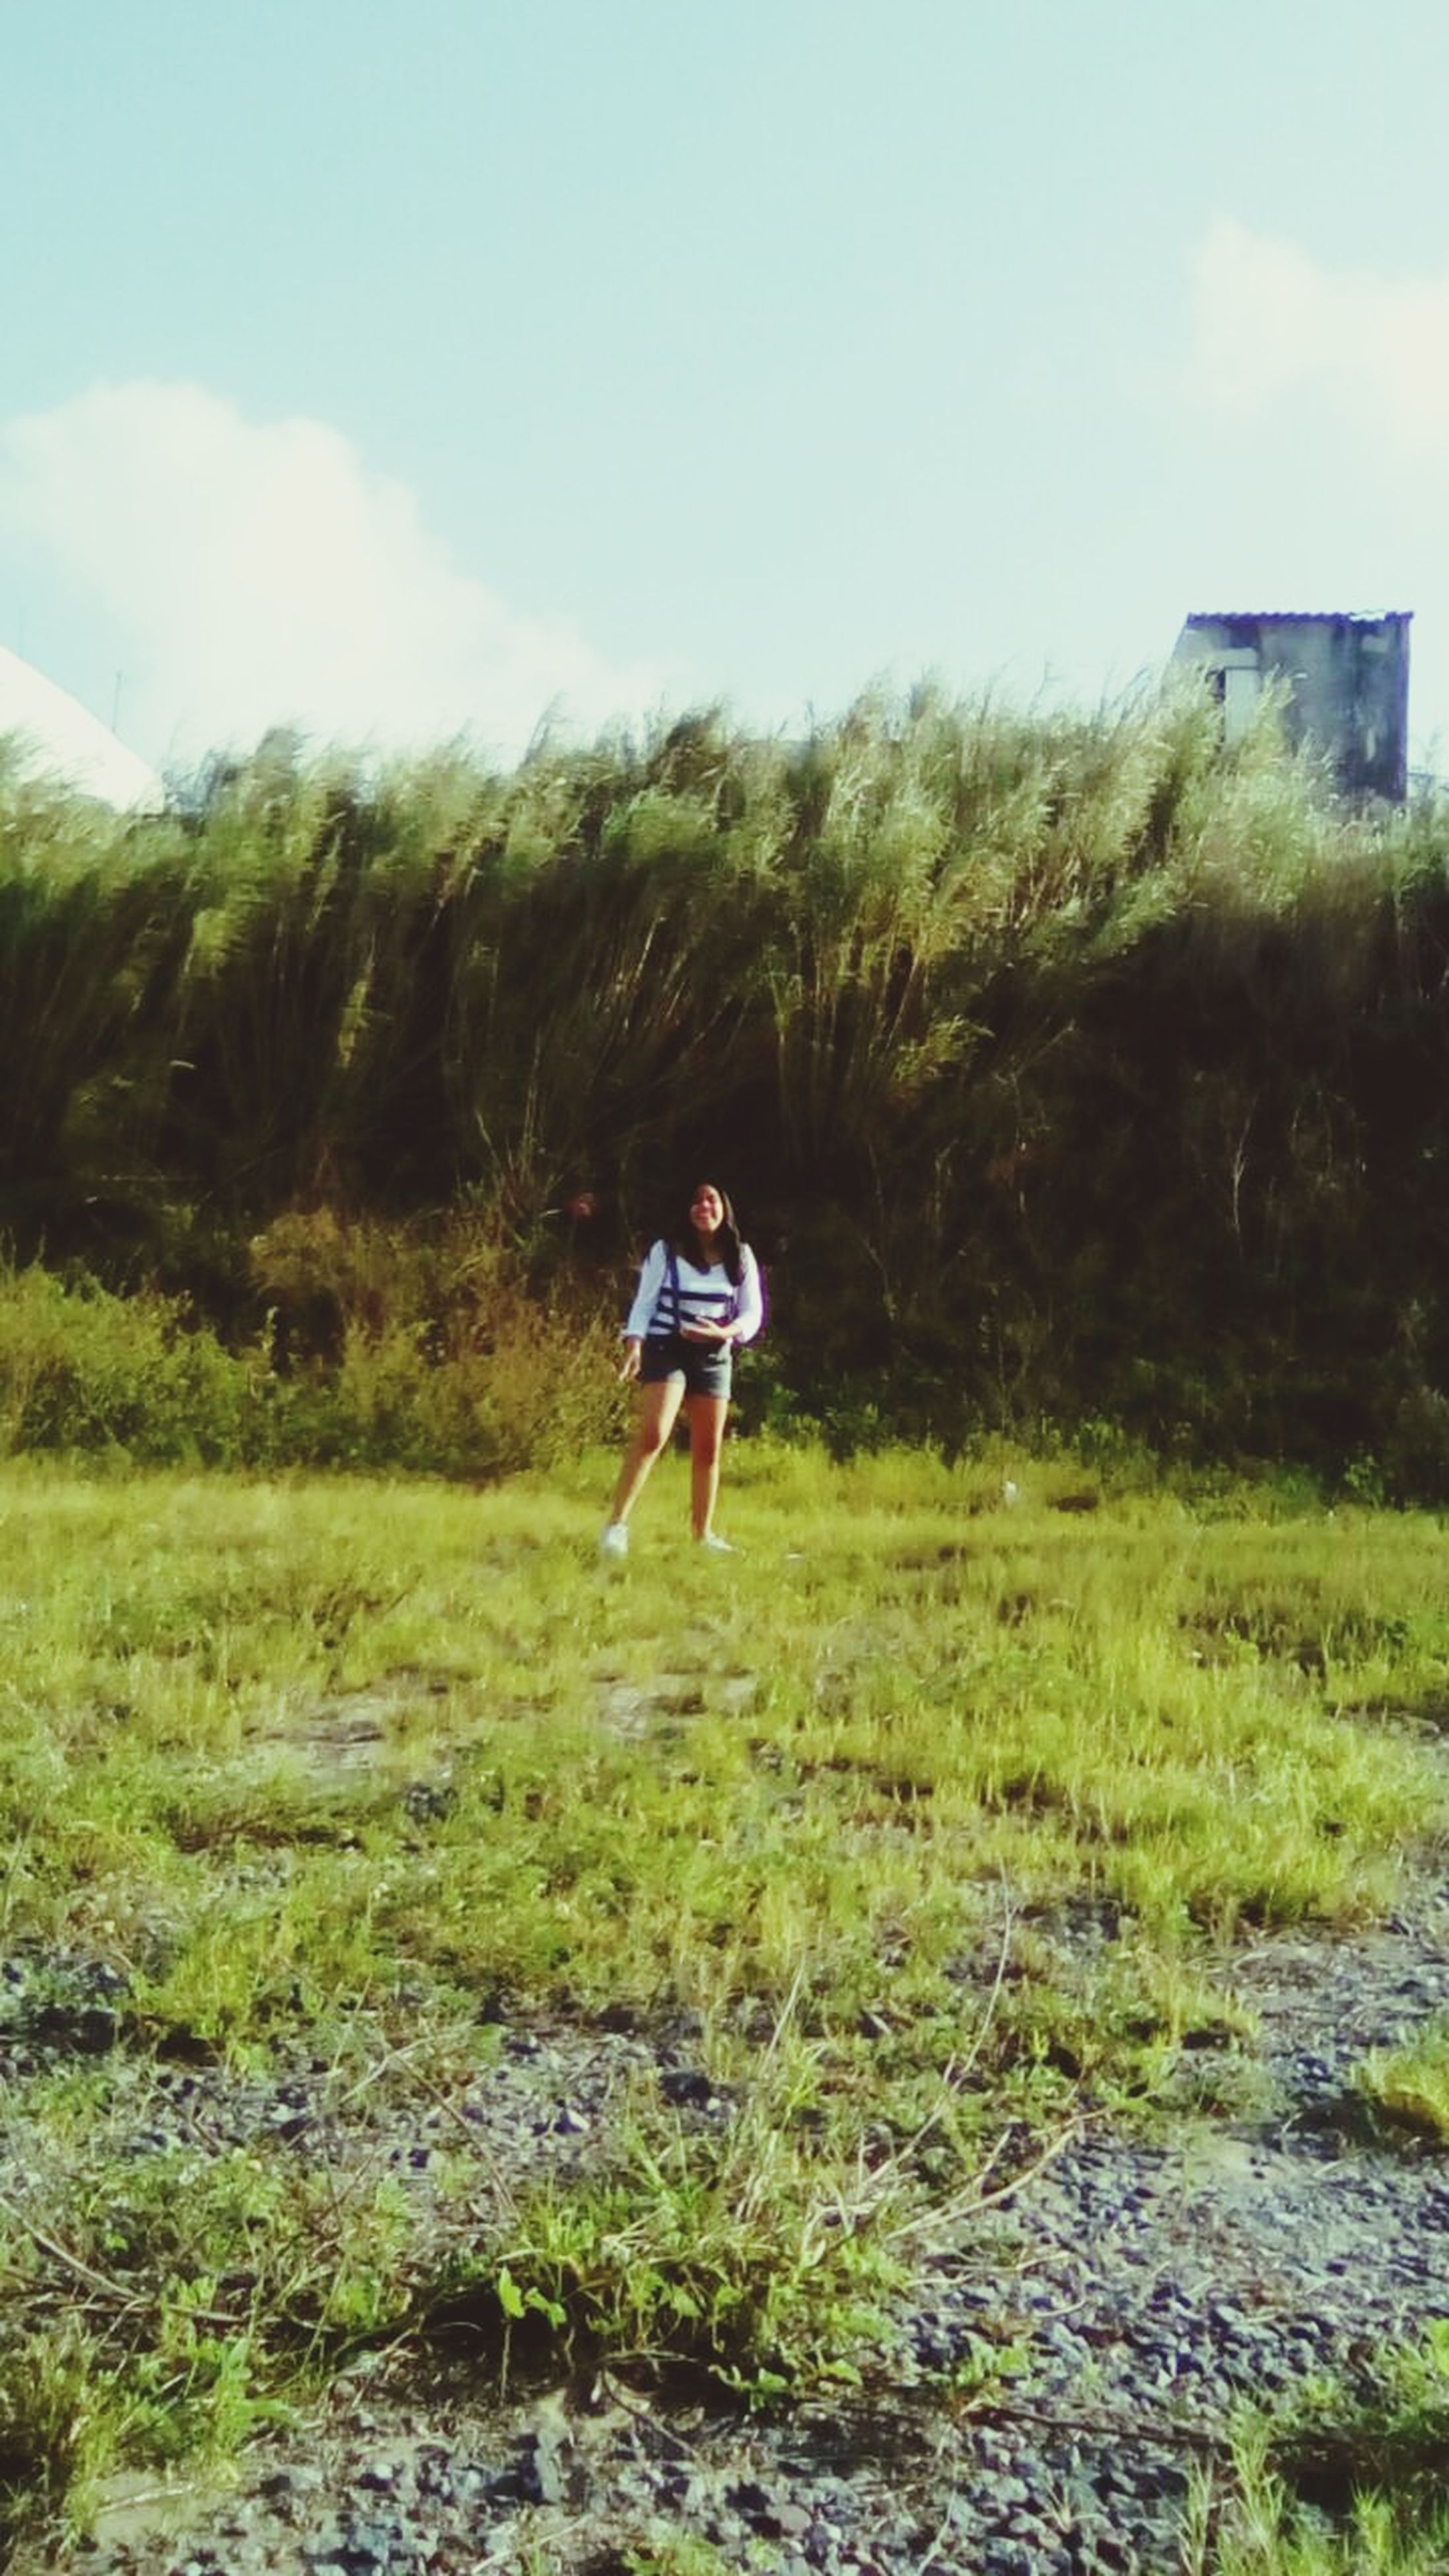 grass, full length, nature, one person, real people, adventure, day, plant, outdoors, forest, sky, tree, people